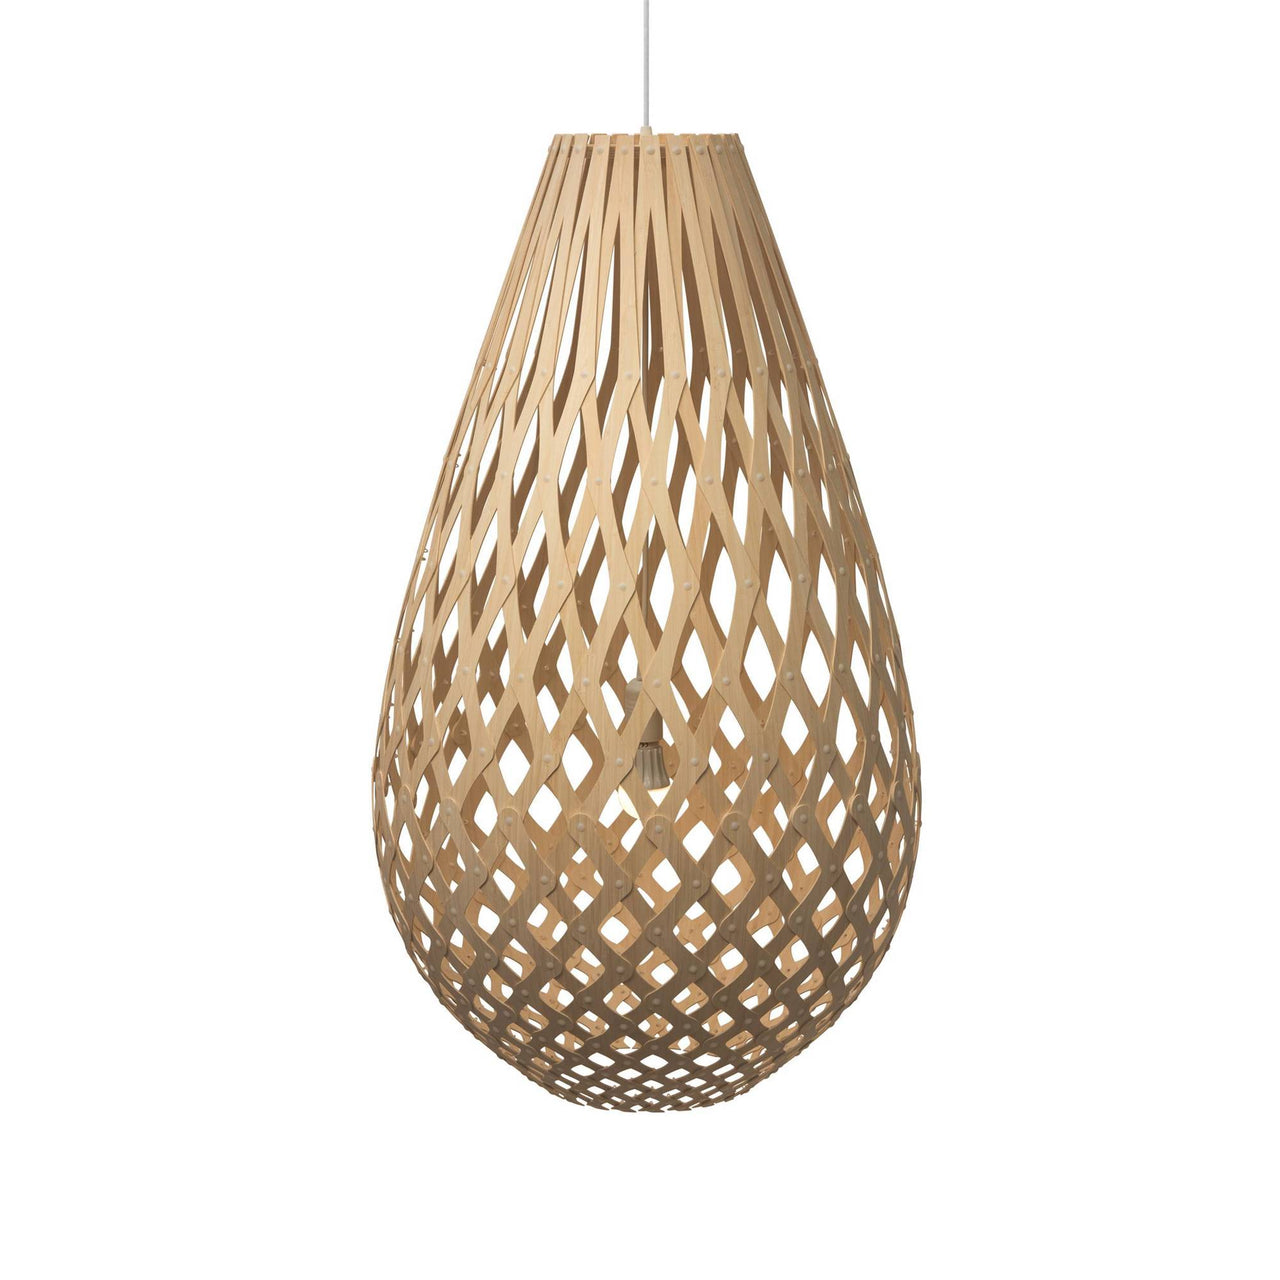 Koura Pendant Light: 1000 + Natural